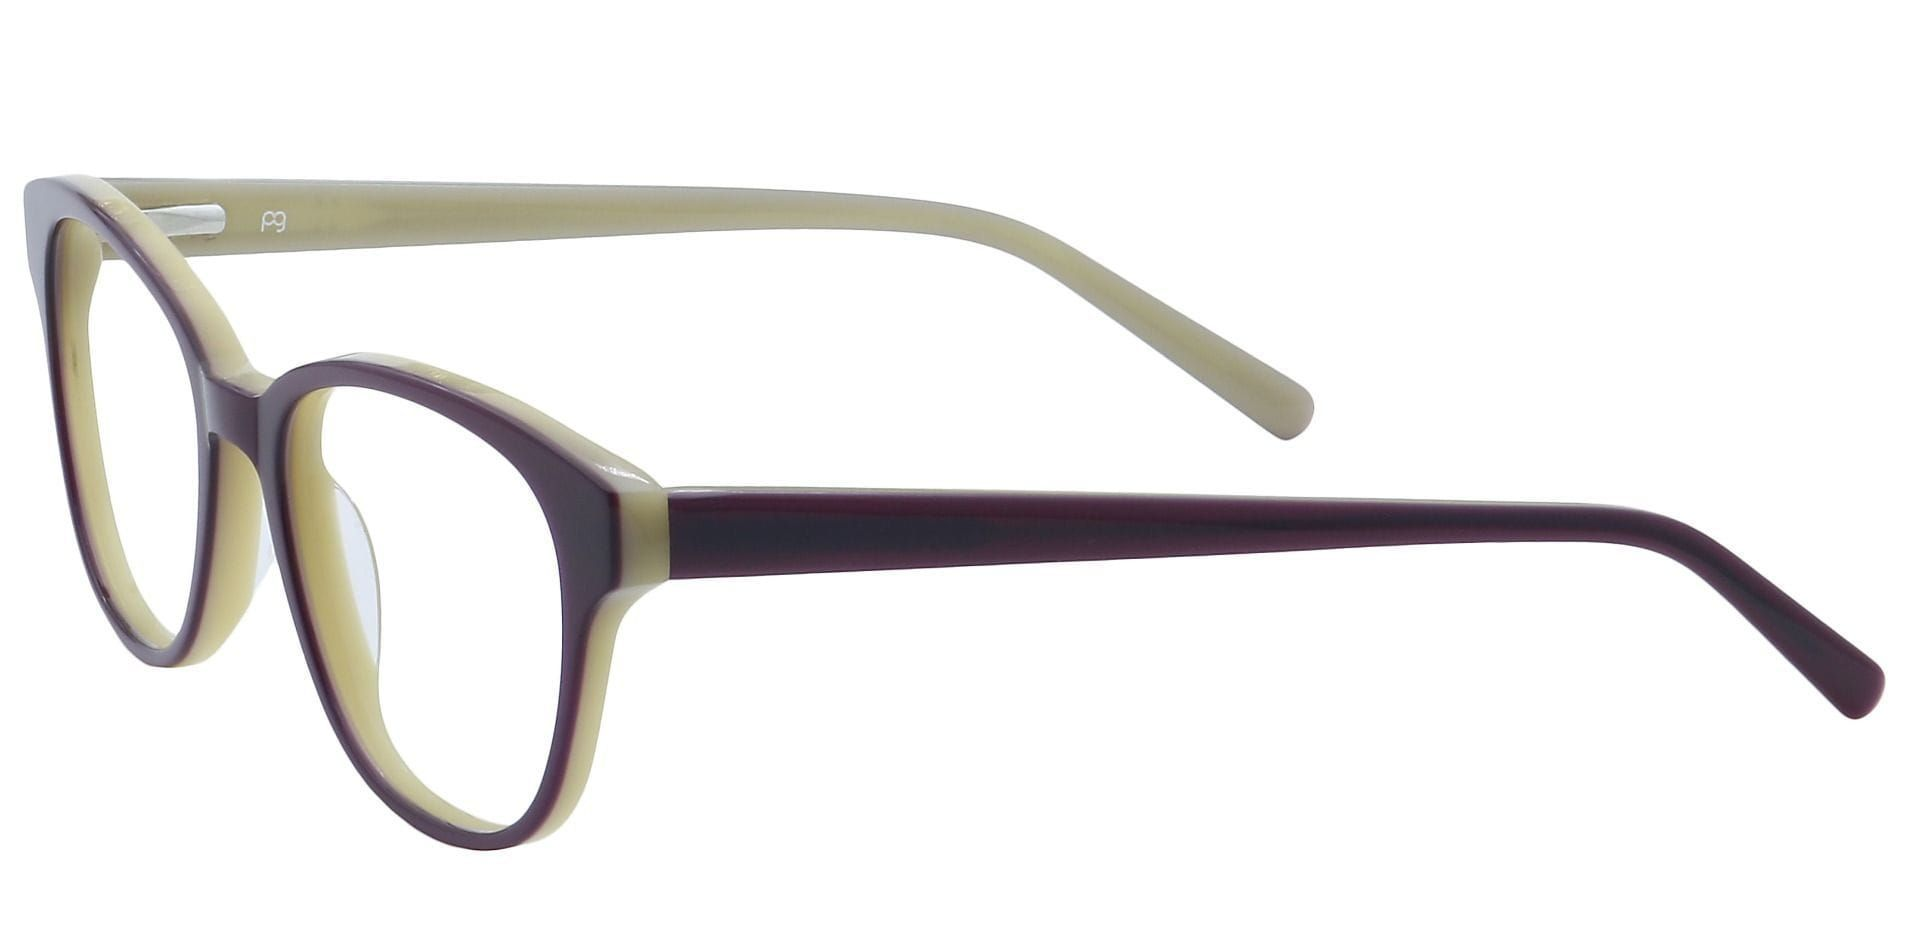 Pinnacle Classic Square Lined Bifocal Glasses - Brown